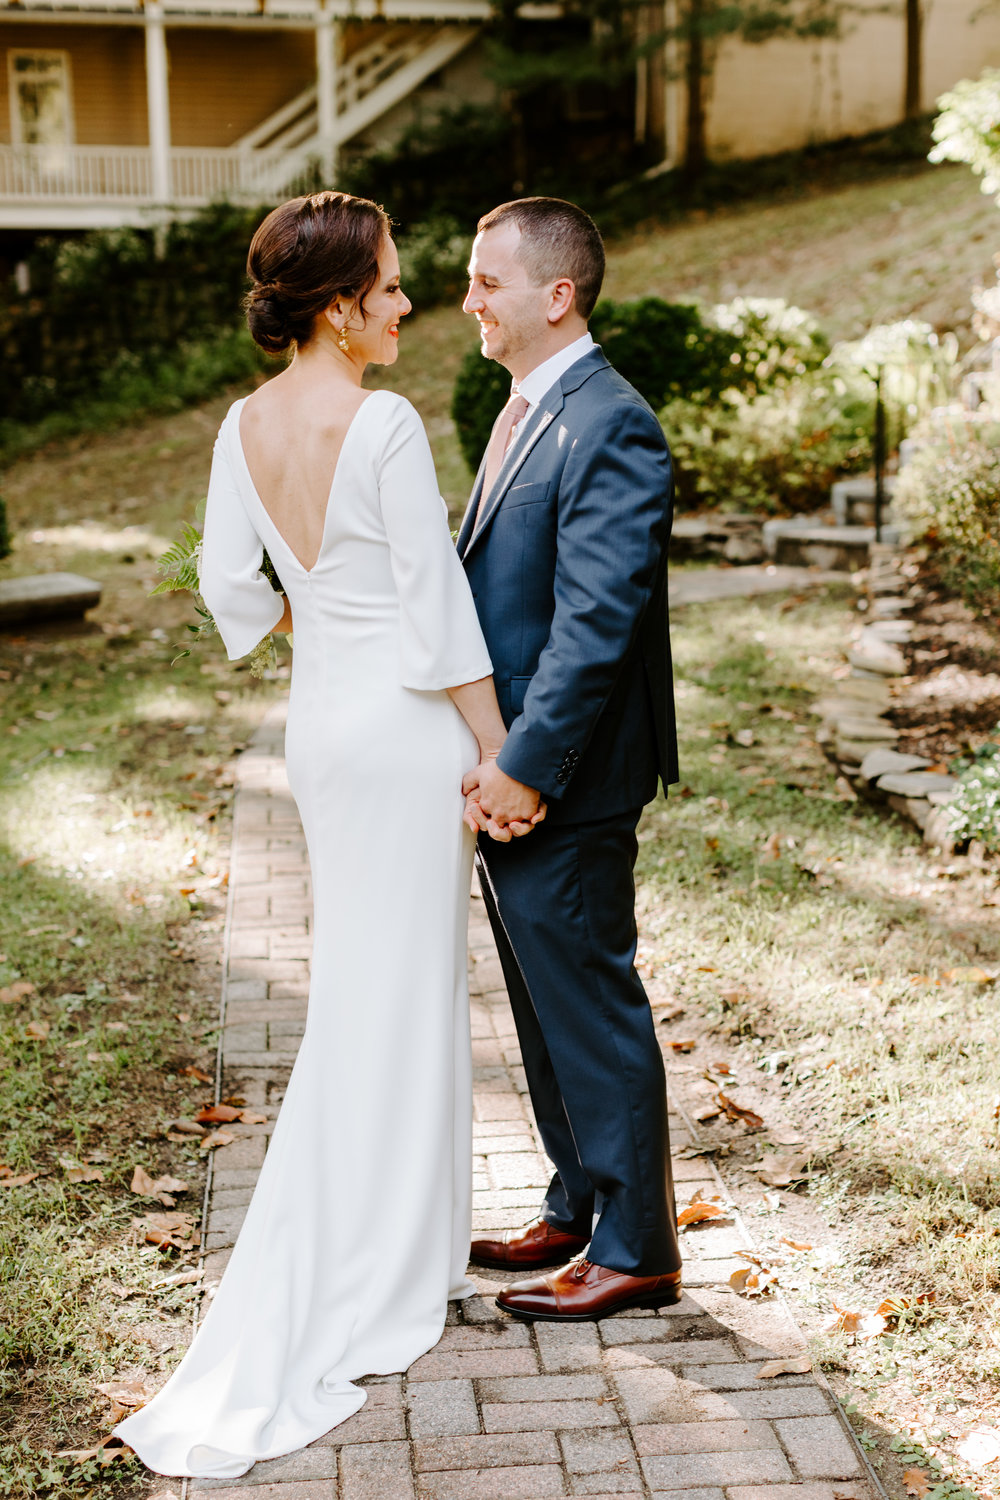 09.28.18 Marie +Jeff Alicia WIley Photography MD LC AC146.jpg